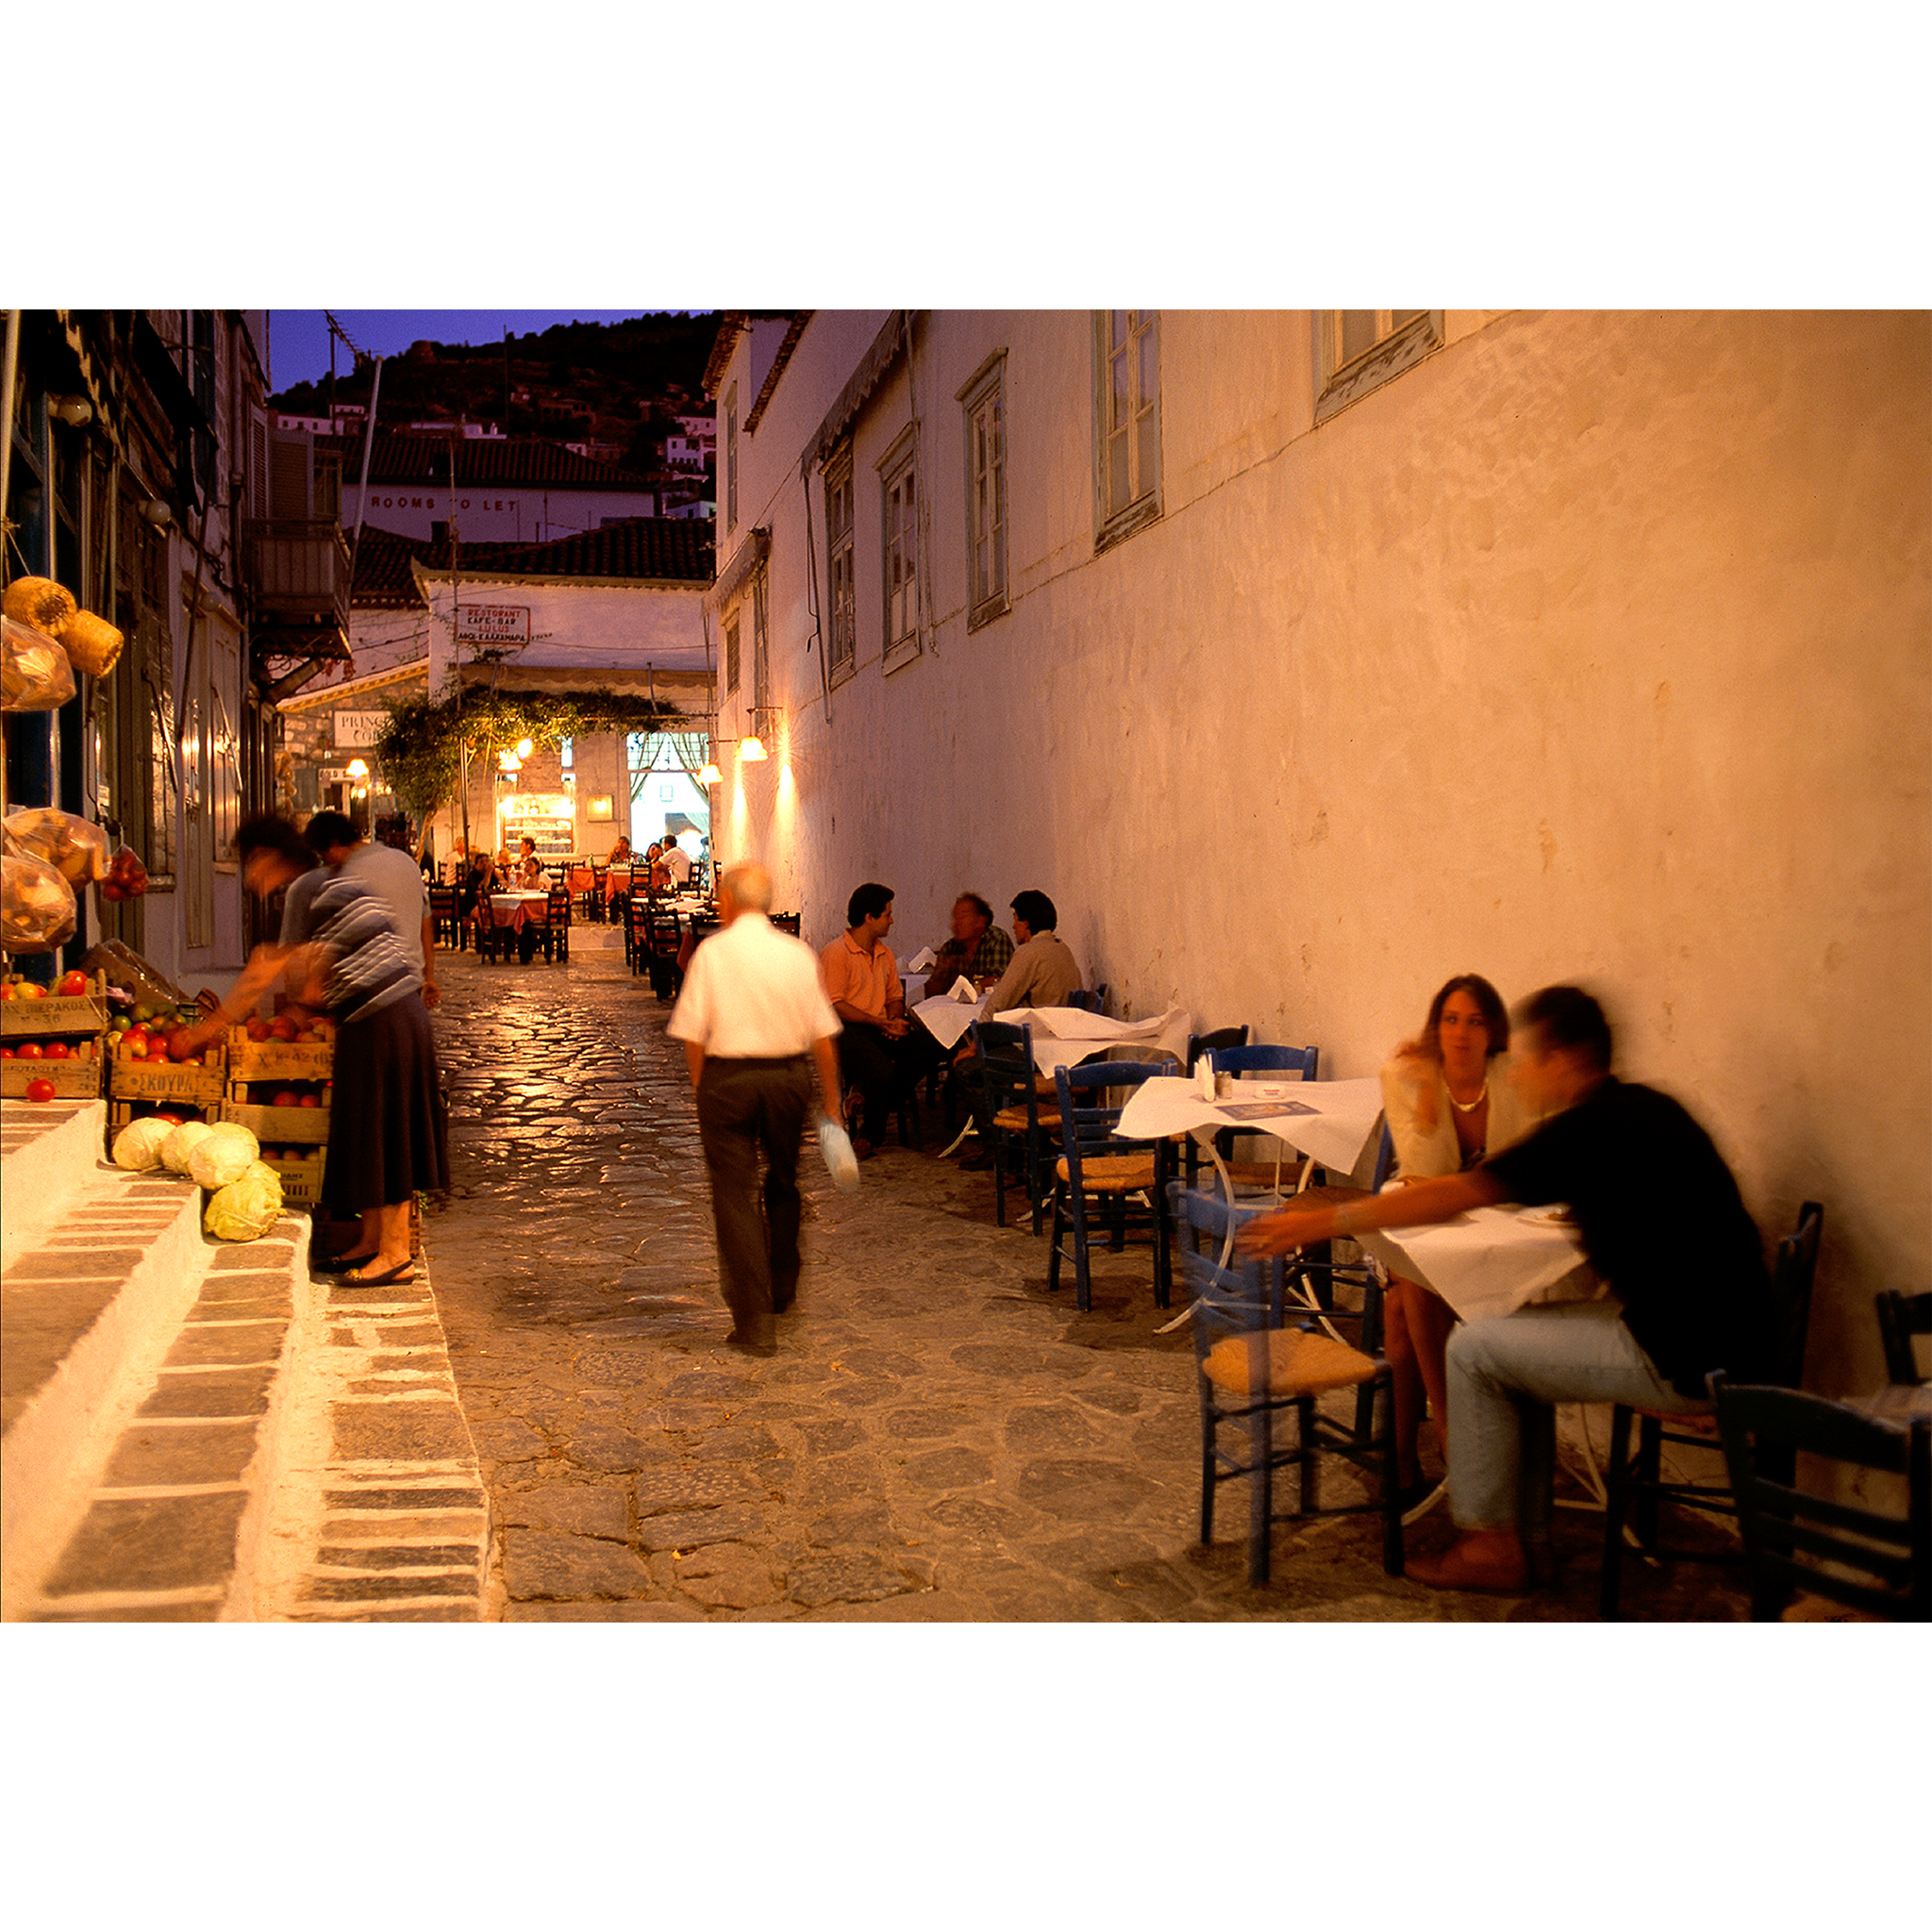 Photo of outdoor Greek restaurant at night with people eating